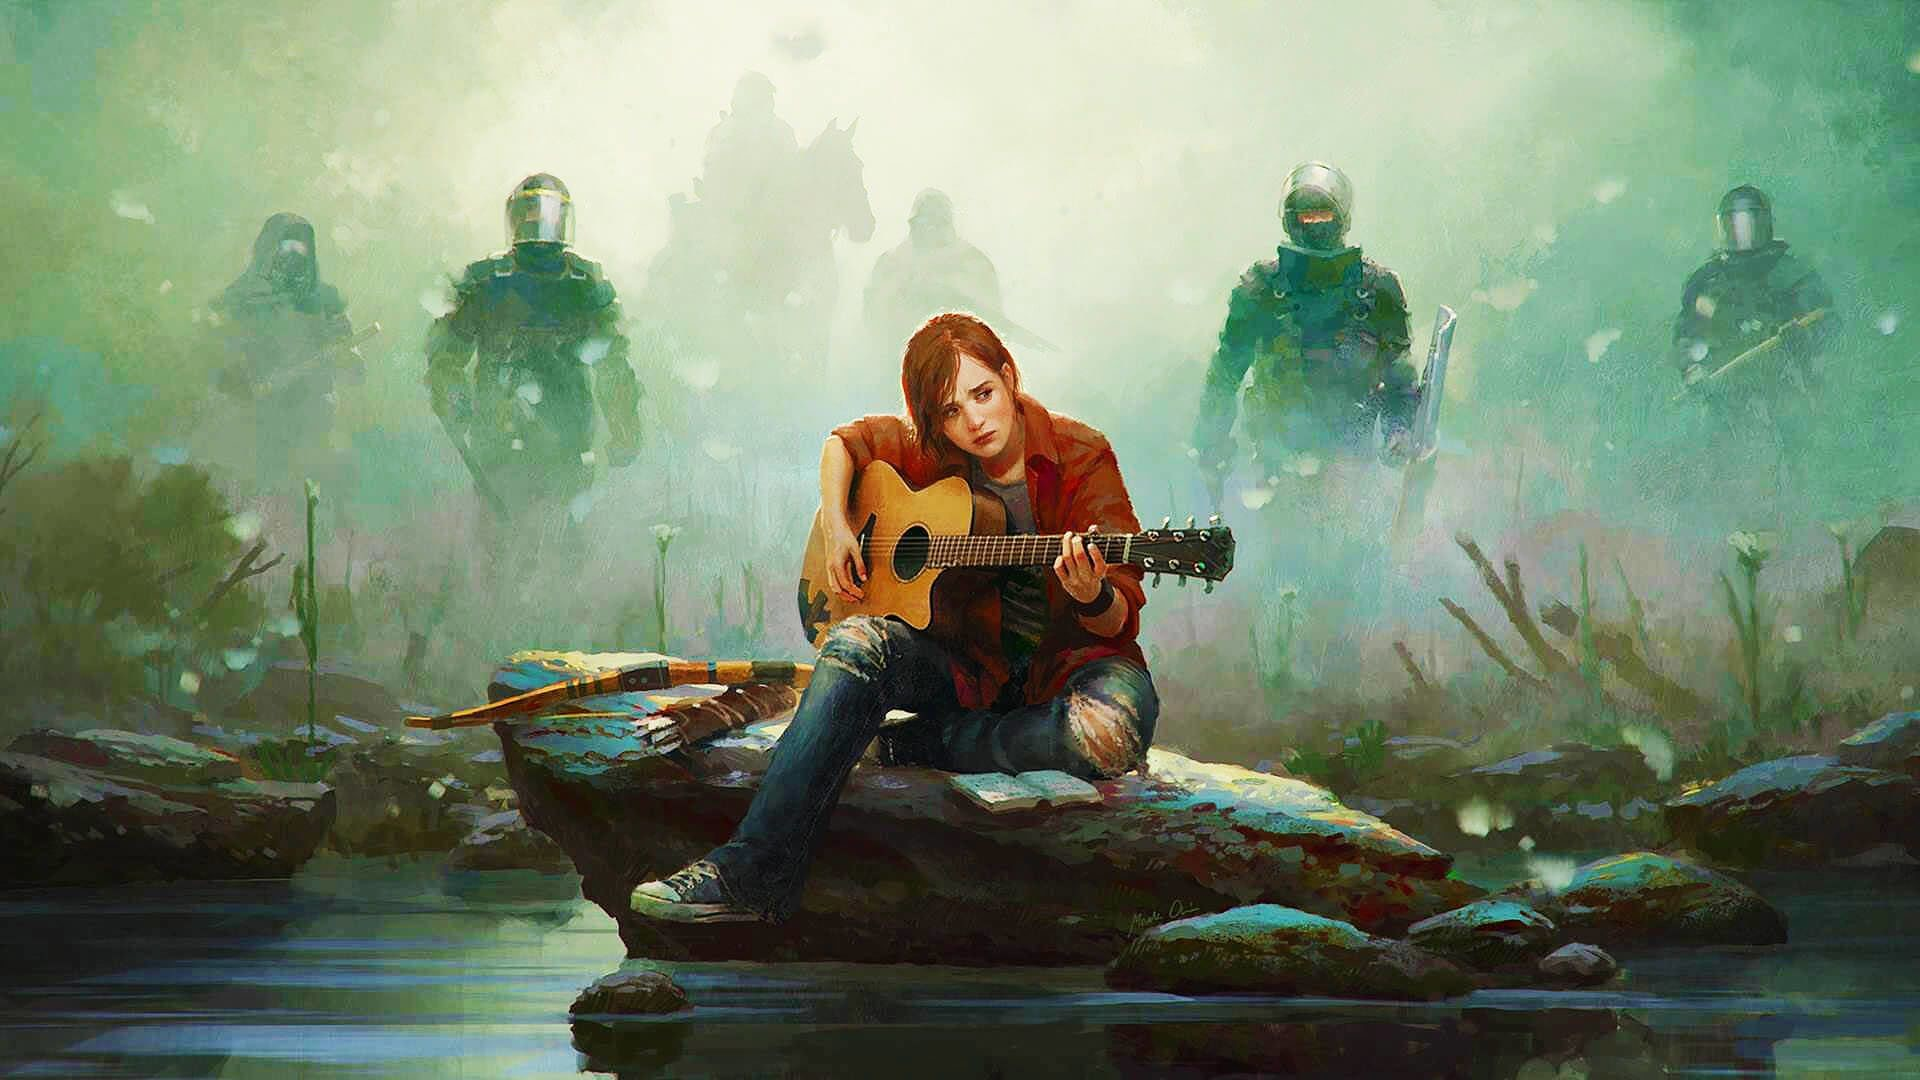 1920x1080 However recently Neil Druckmann says not only that he is working on a new  story line but it will be carried out much differently than the last game,  ...